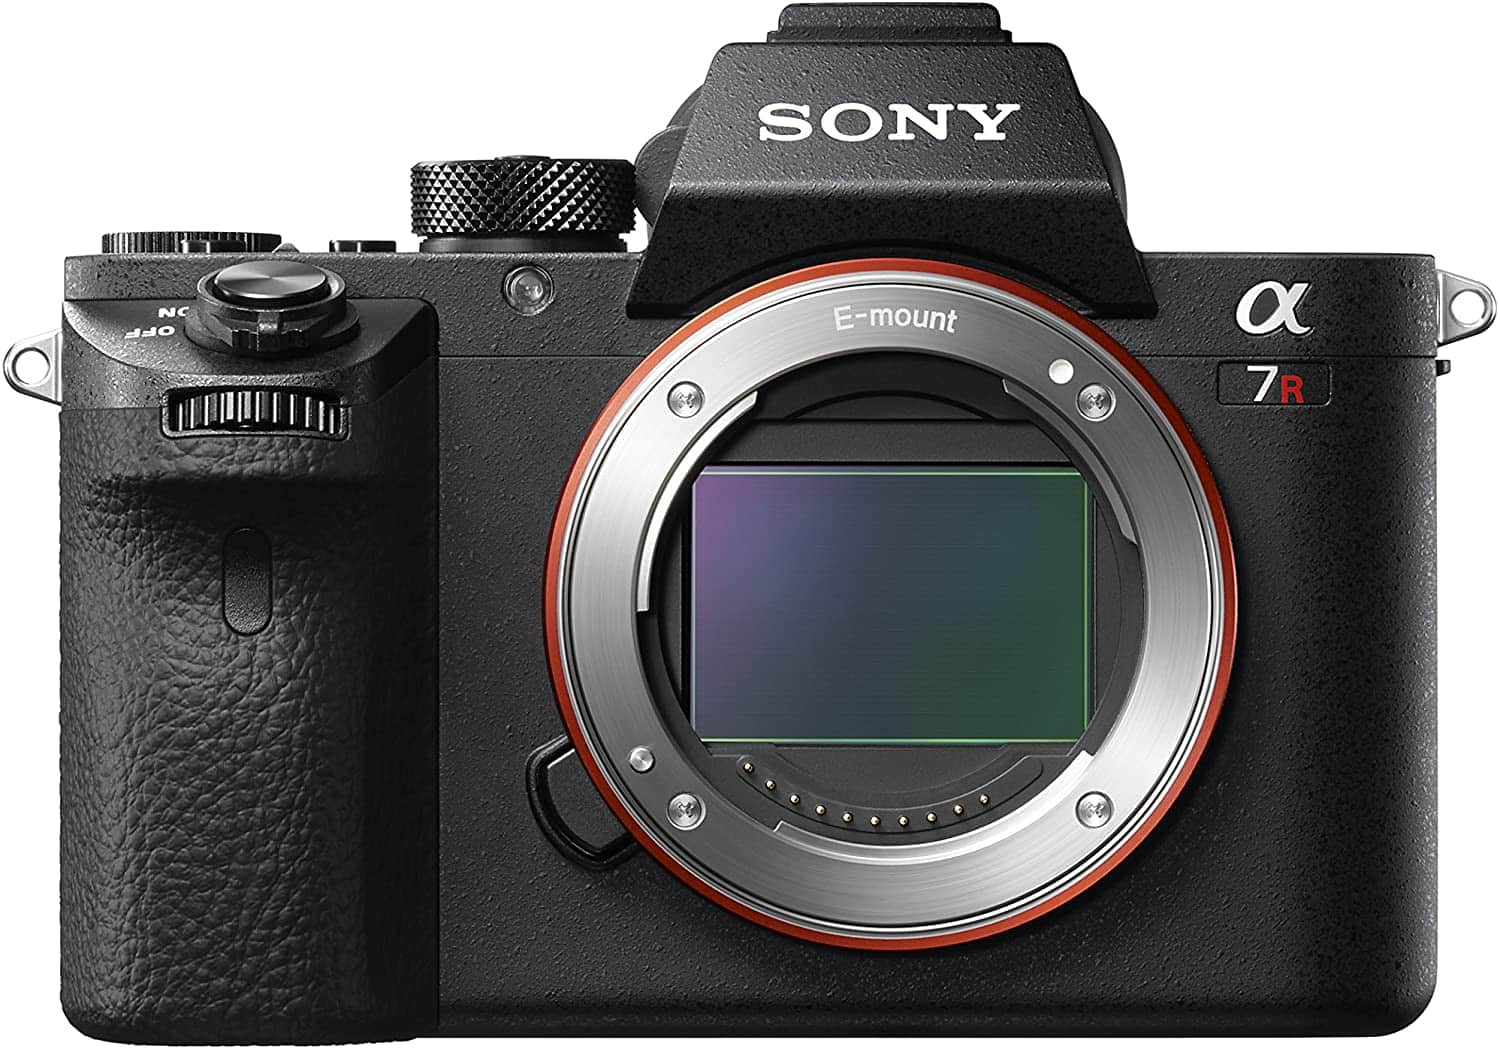 Sony a7R II Full-Frame Mirrorless Interchangeable Lens Camera, Body Only (Black) (ILCE7RM2/B) - $1,198.00 $1198 (Amazon & Best Buy for body only & B&H w/ accesories))